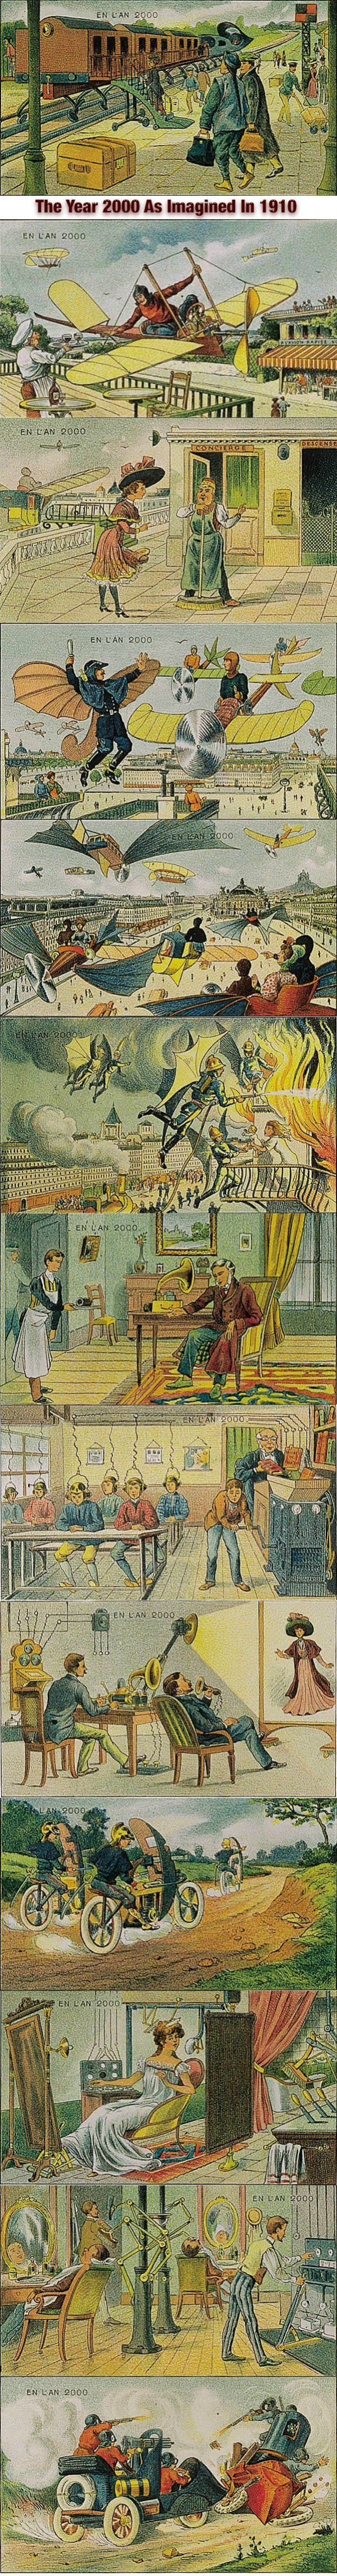 Year 2000 as imagined in 1910